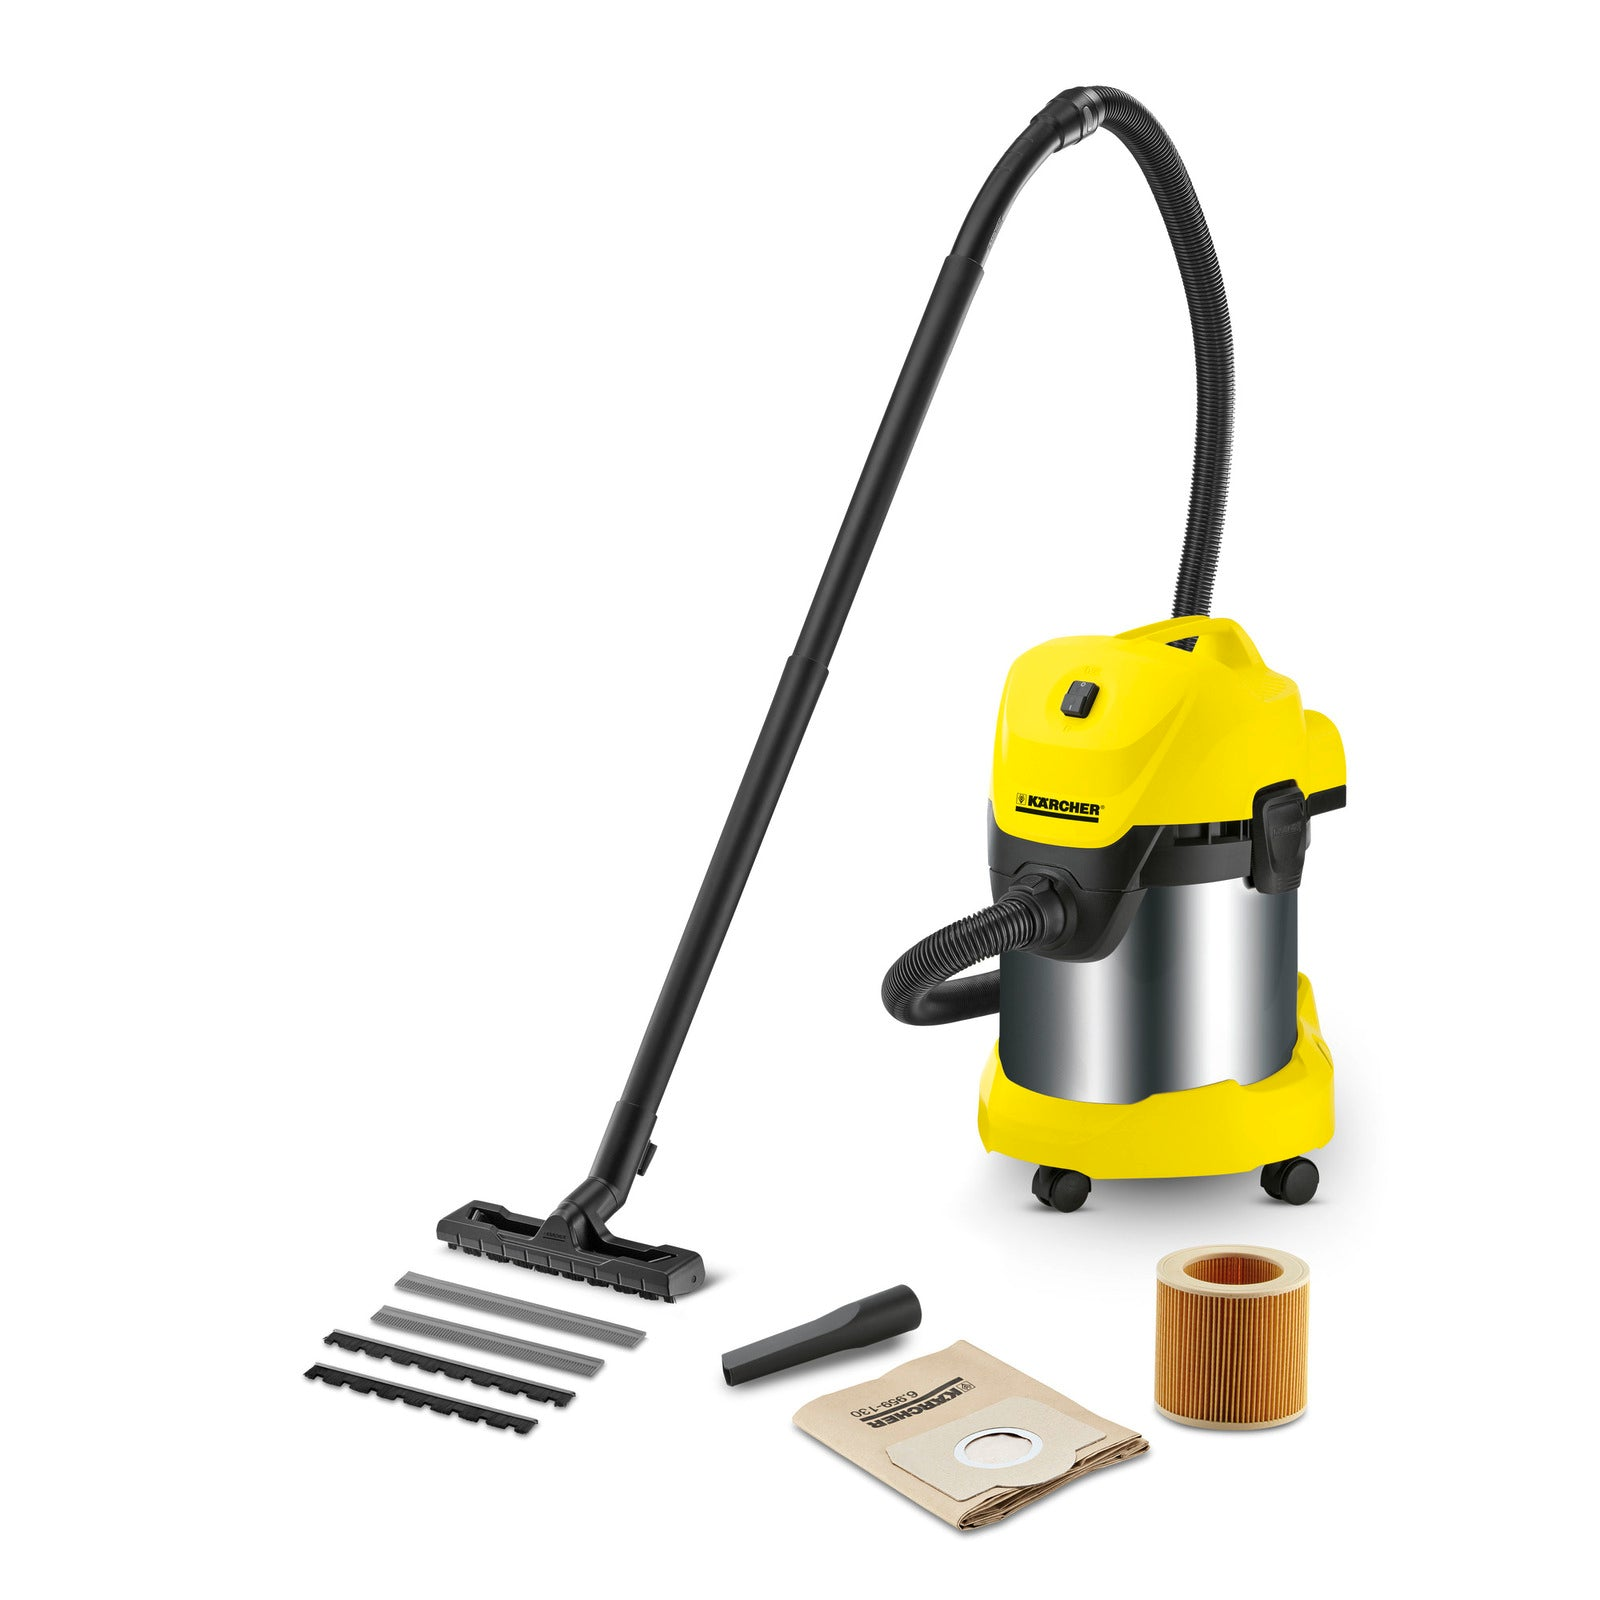 Karcher WD 3 Premium (Wet & Dry Vacuum Cleaner)